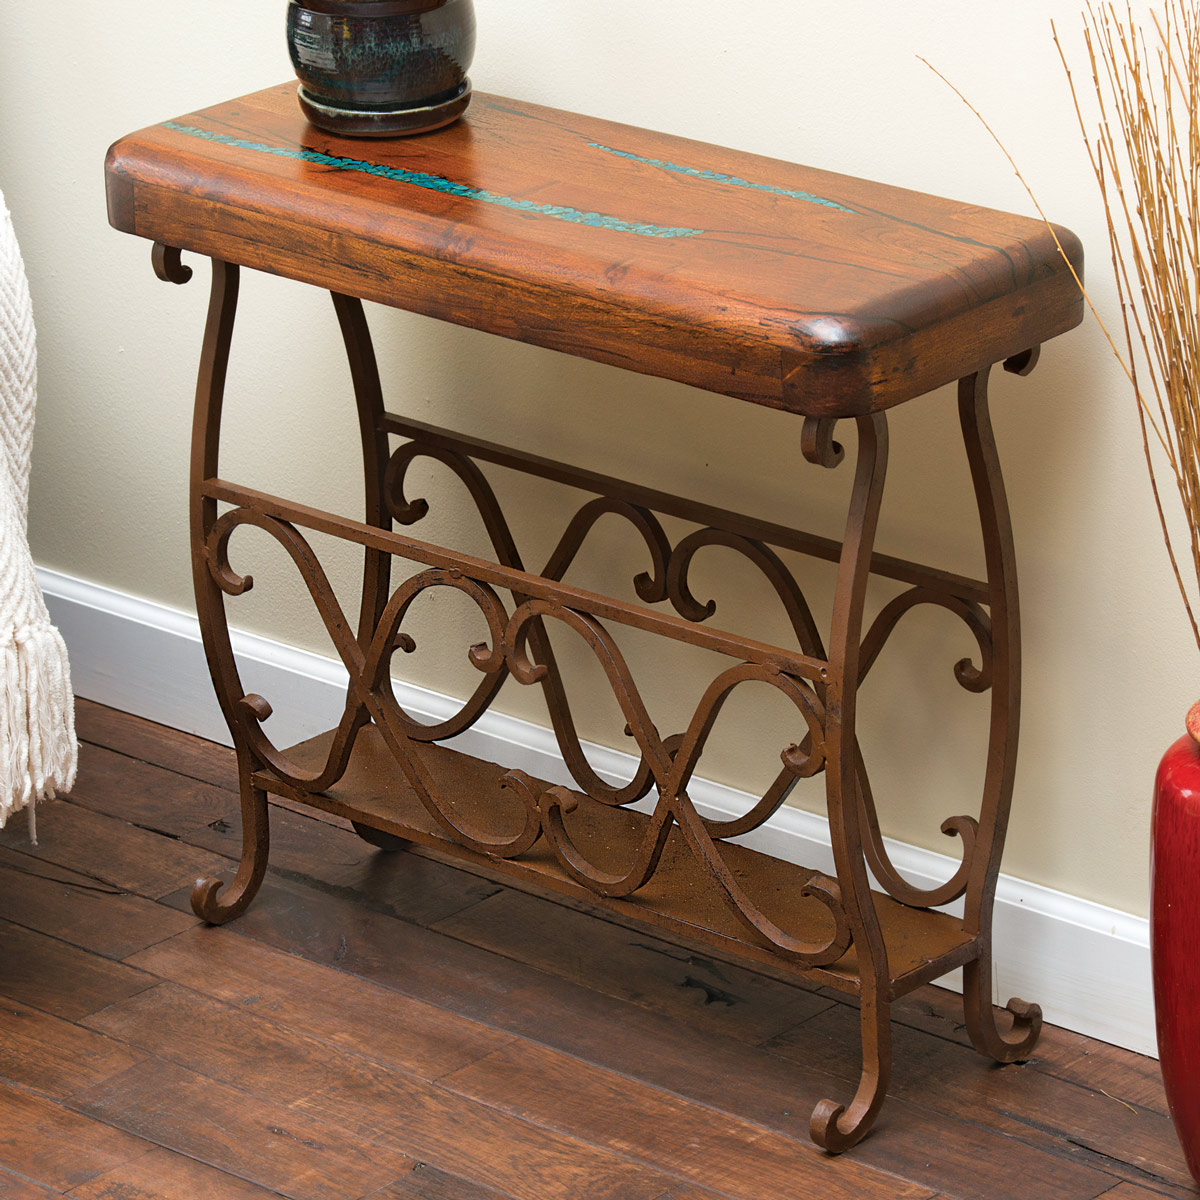 western furniture large mesquite scrollwork accent tablelone star inside rustic table metal pier one imports bedroom cool bar cooler house decoration things triangle side white